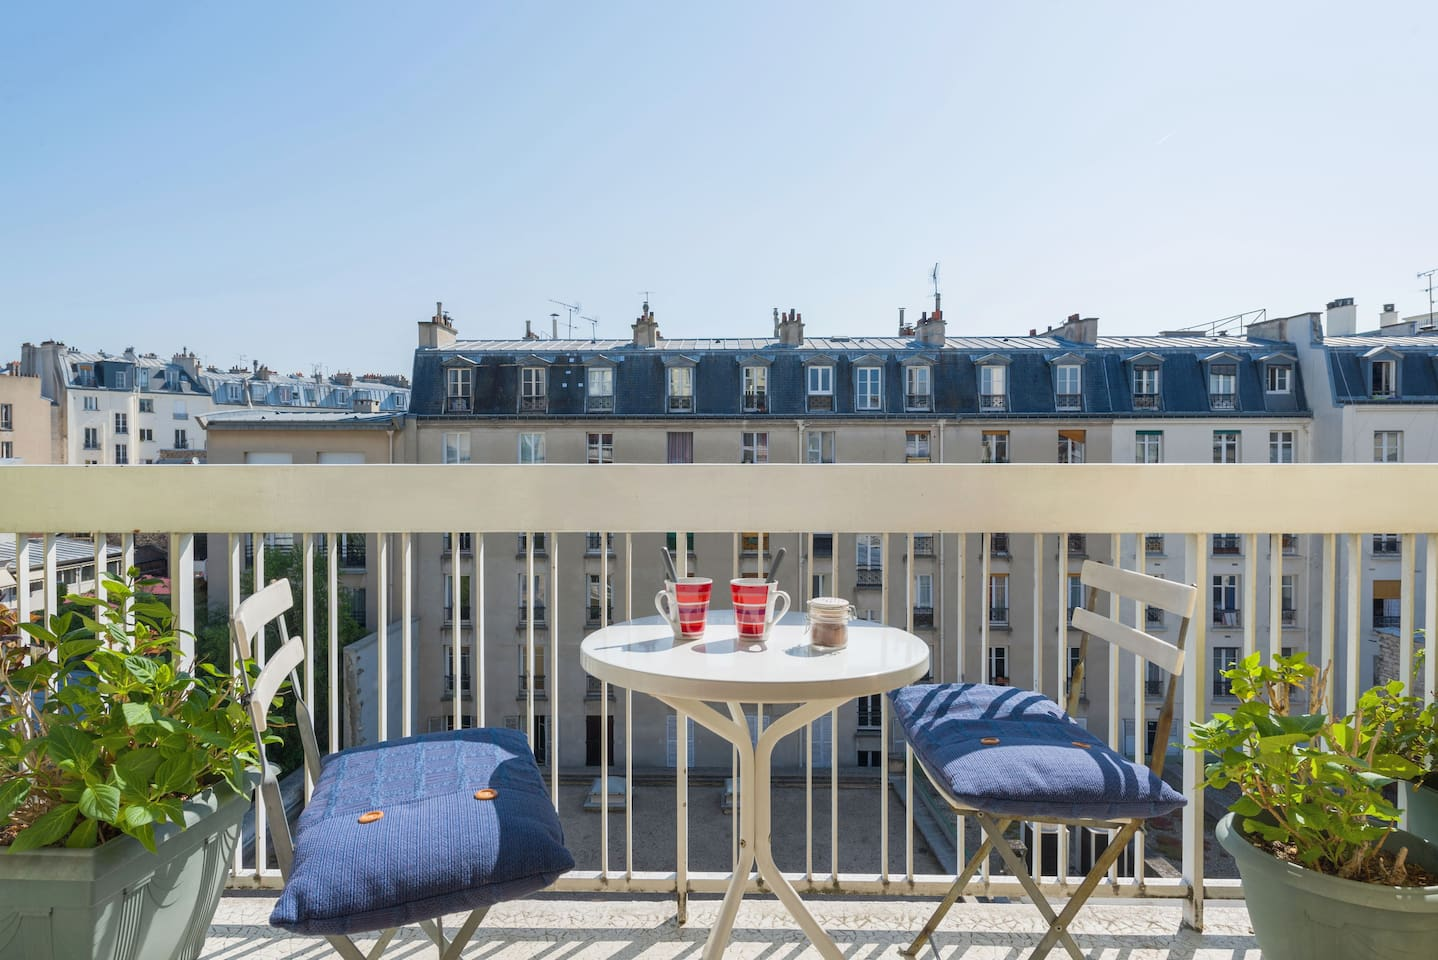 Have breakfast, brunch or drinks on a sunny balcony, with a nice view over Paris' rooftops!